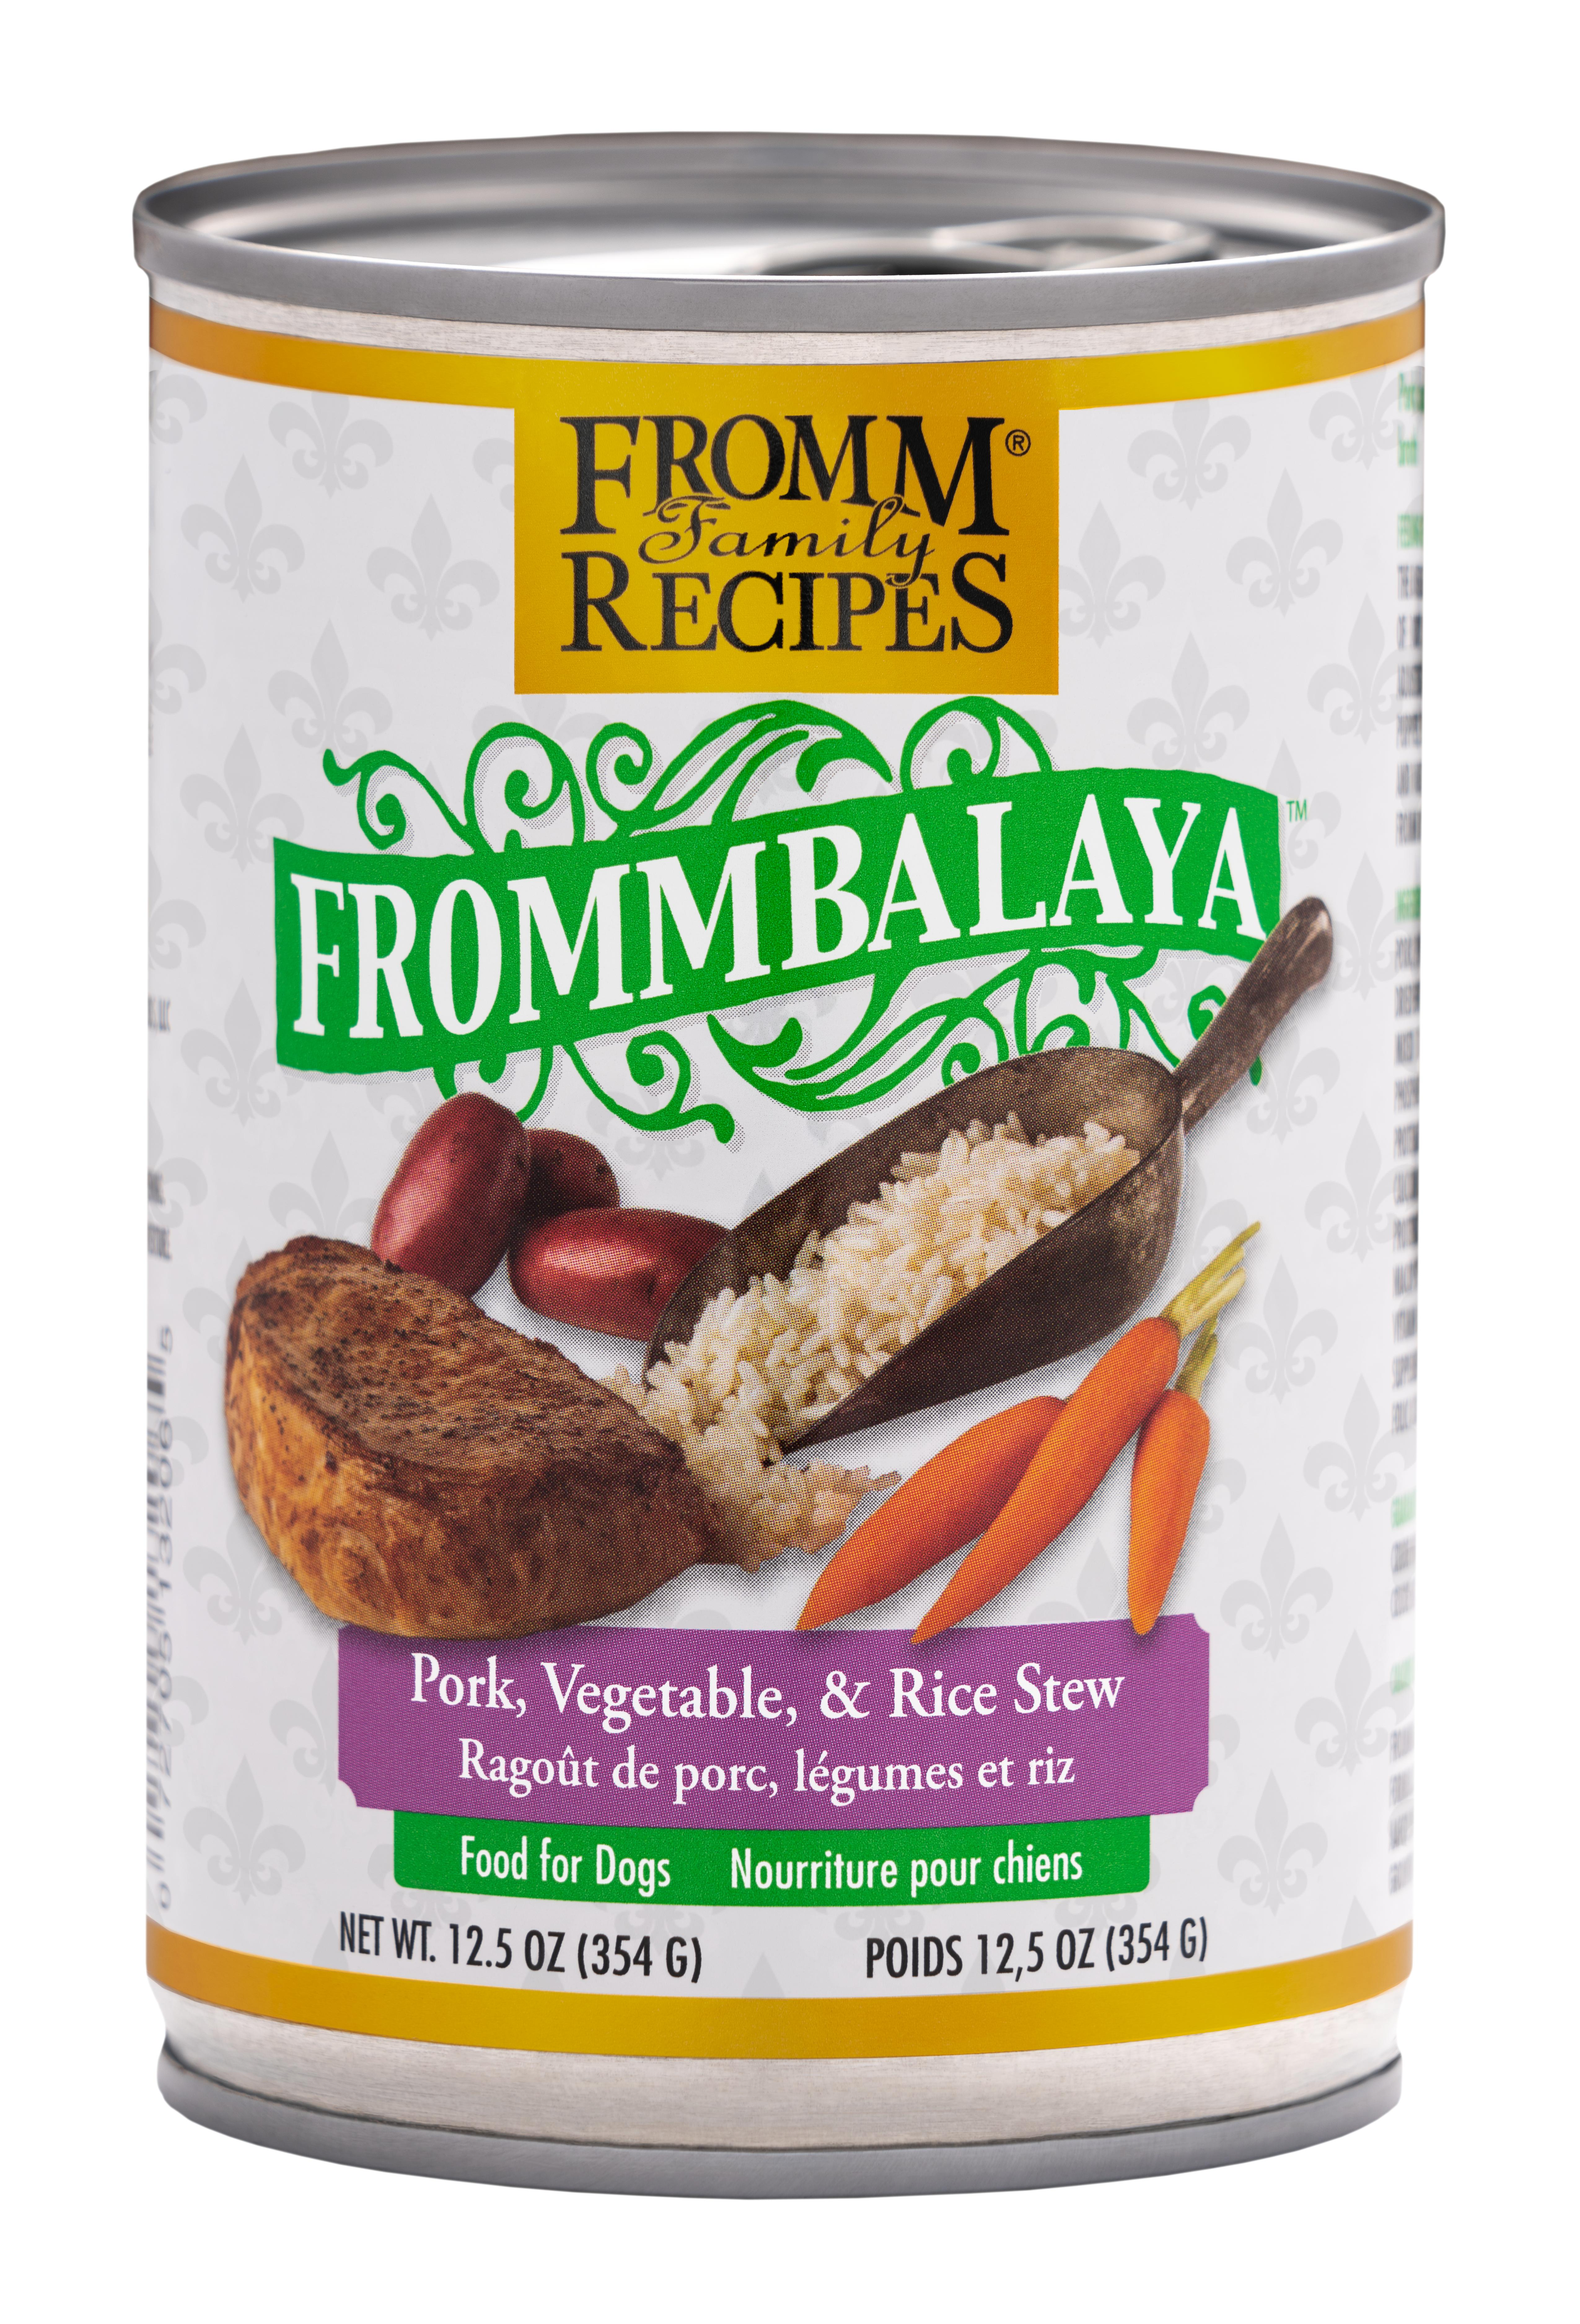 Fromm Family Recipes Frommbalaya Pork, Vegetable & Rice Stew Canned Dog Food, 12.5-oz, case of 12